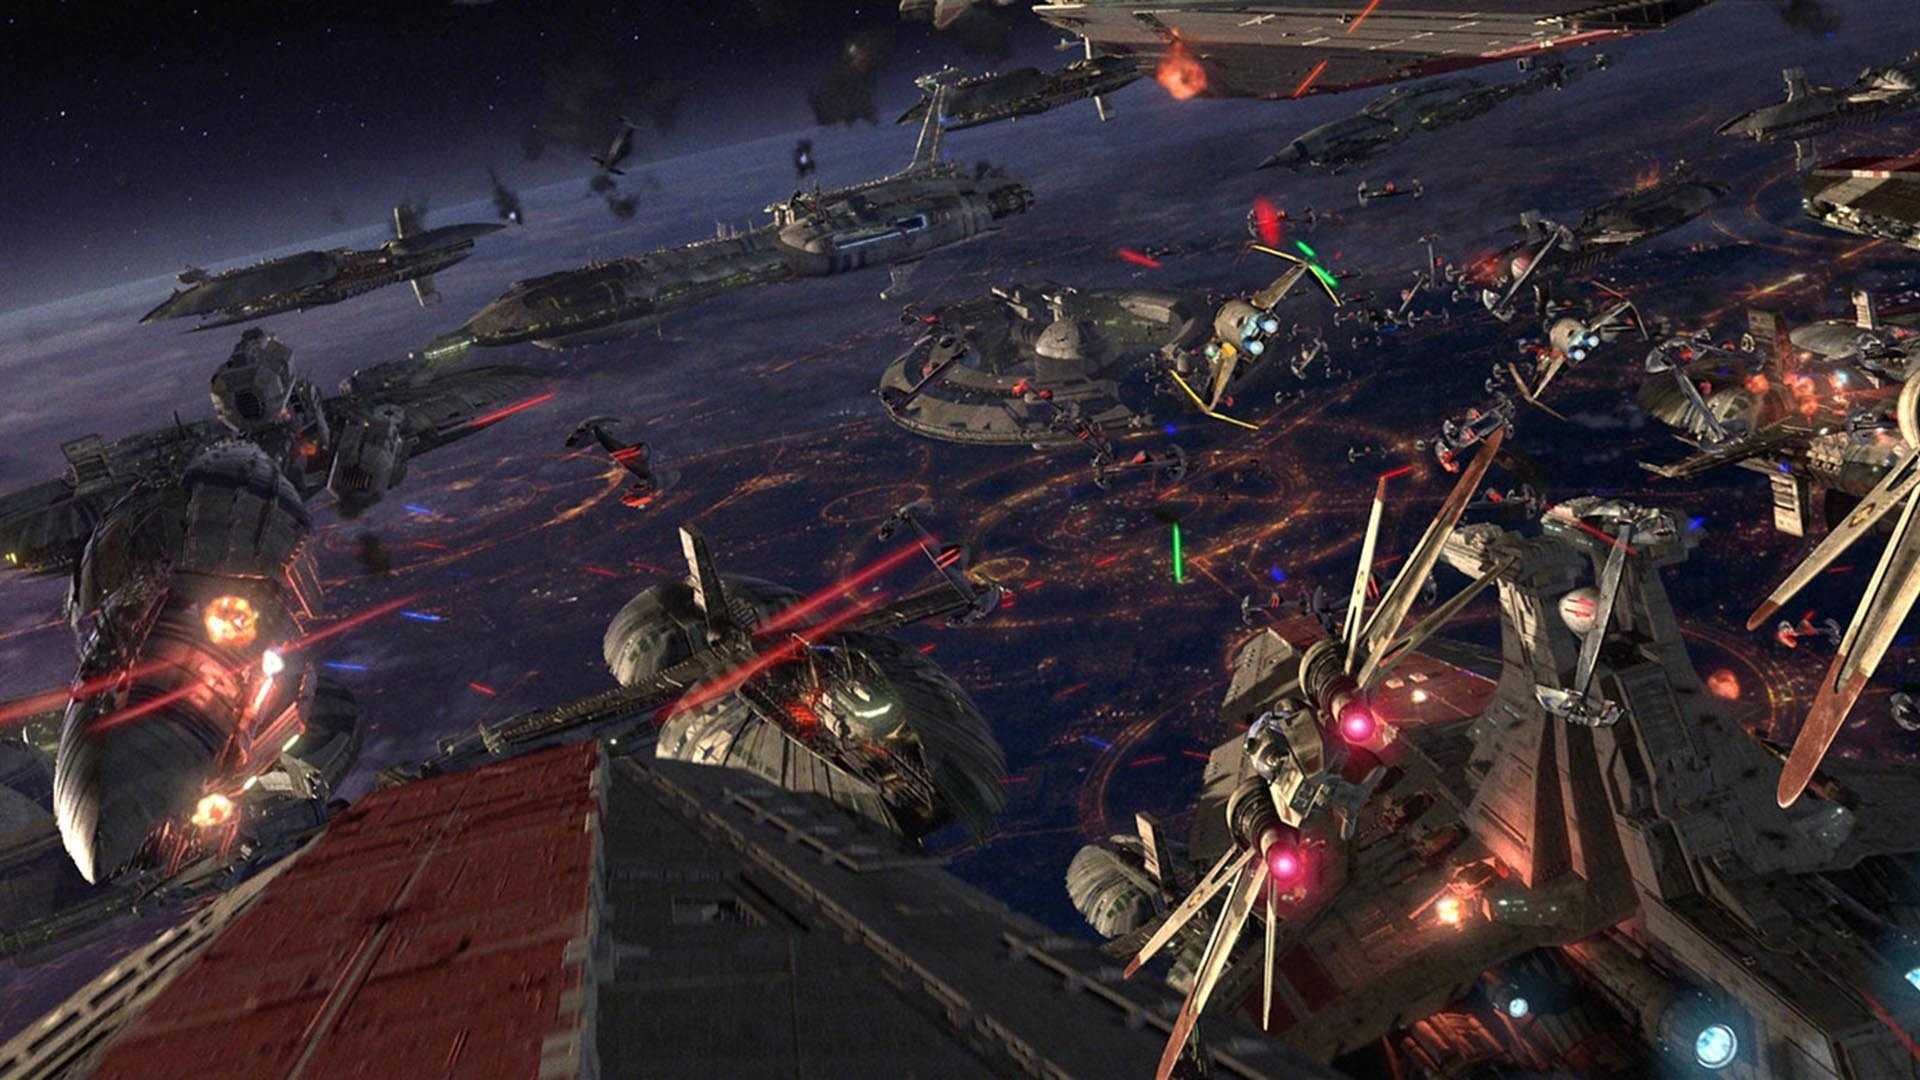 50] Star Wars Space Battle Wallpaper on WallpaperSafari 1920x1080